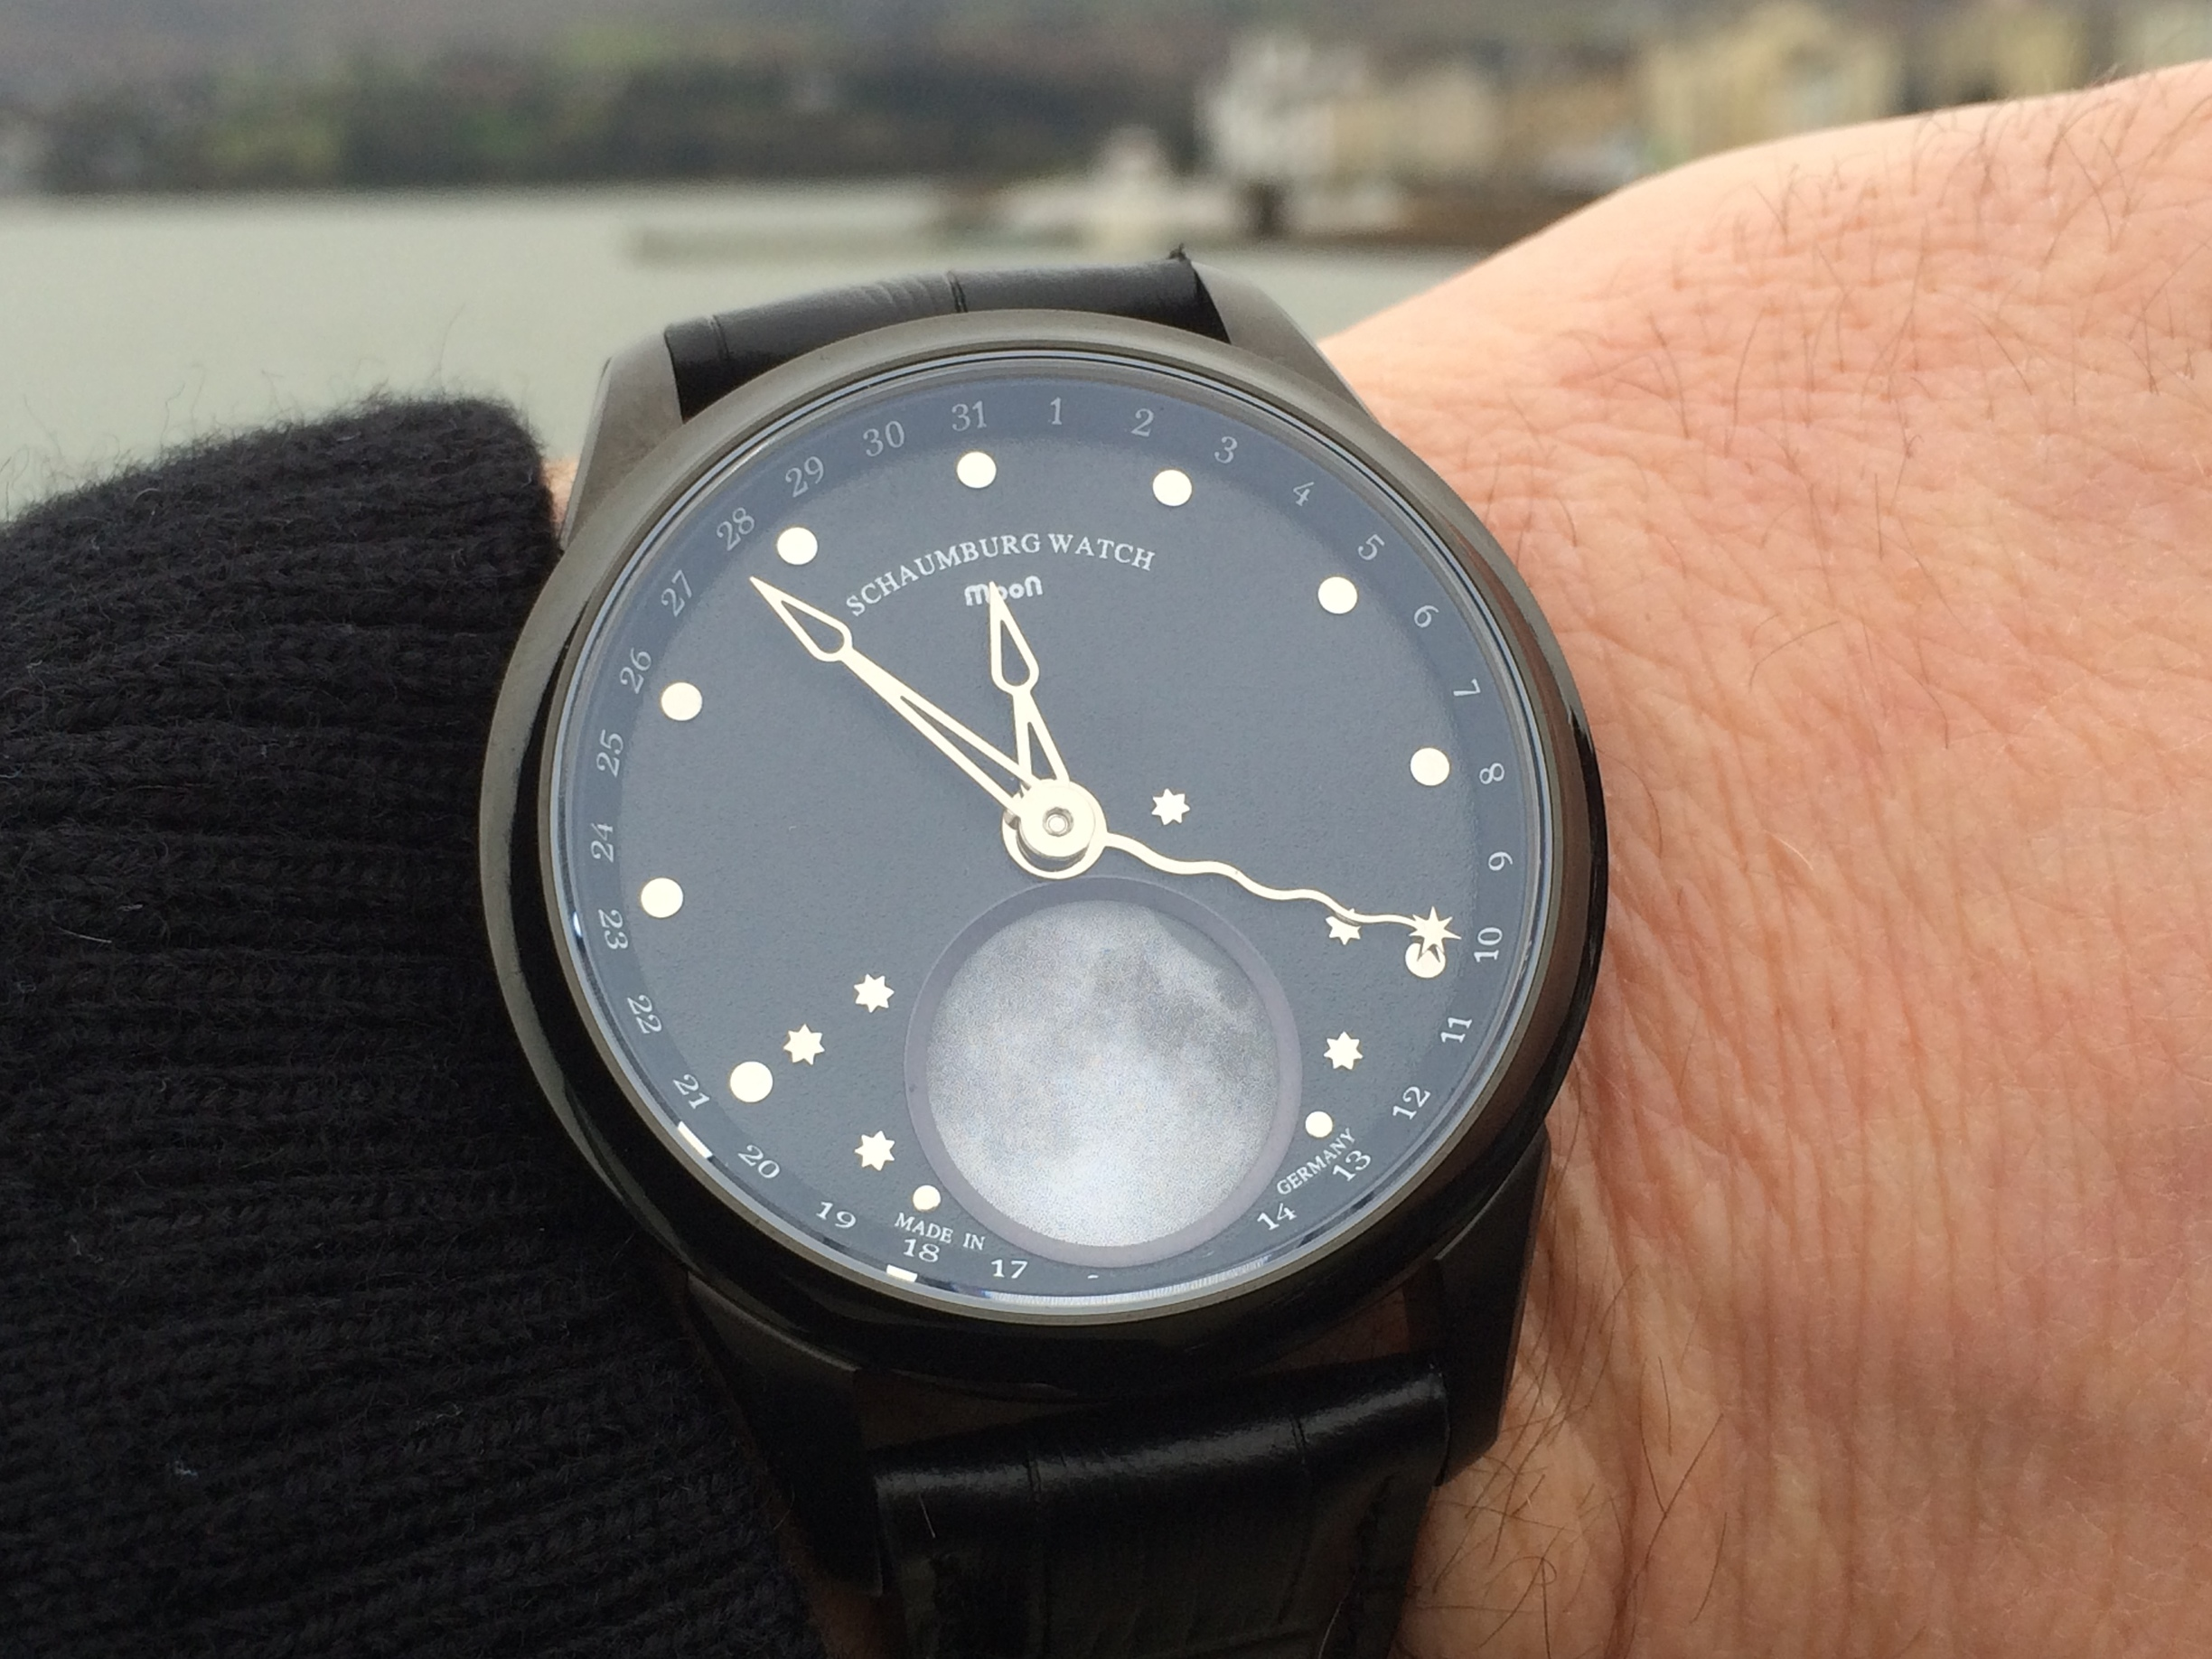 The Schaumburg Watch MooN Two in Black PVD